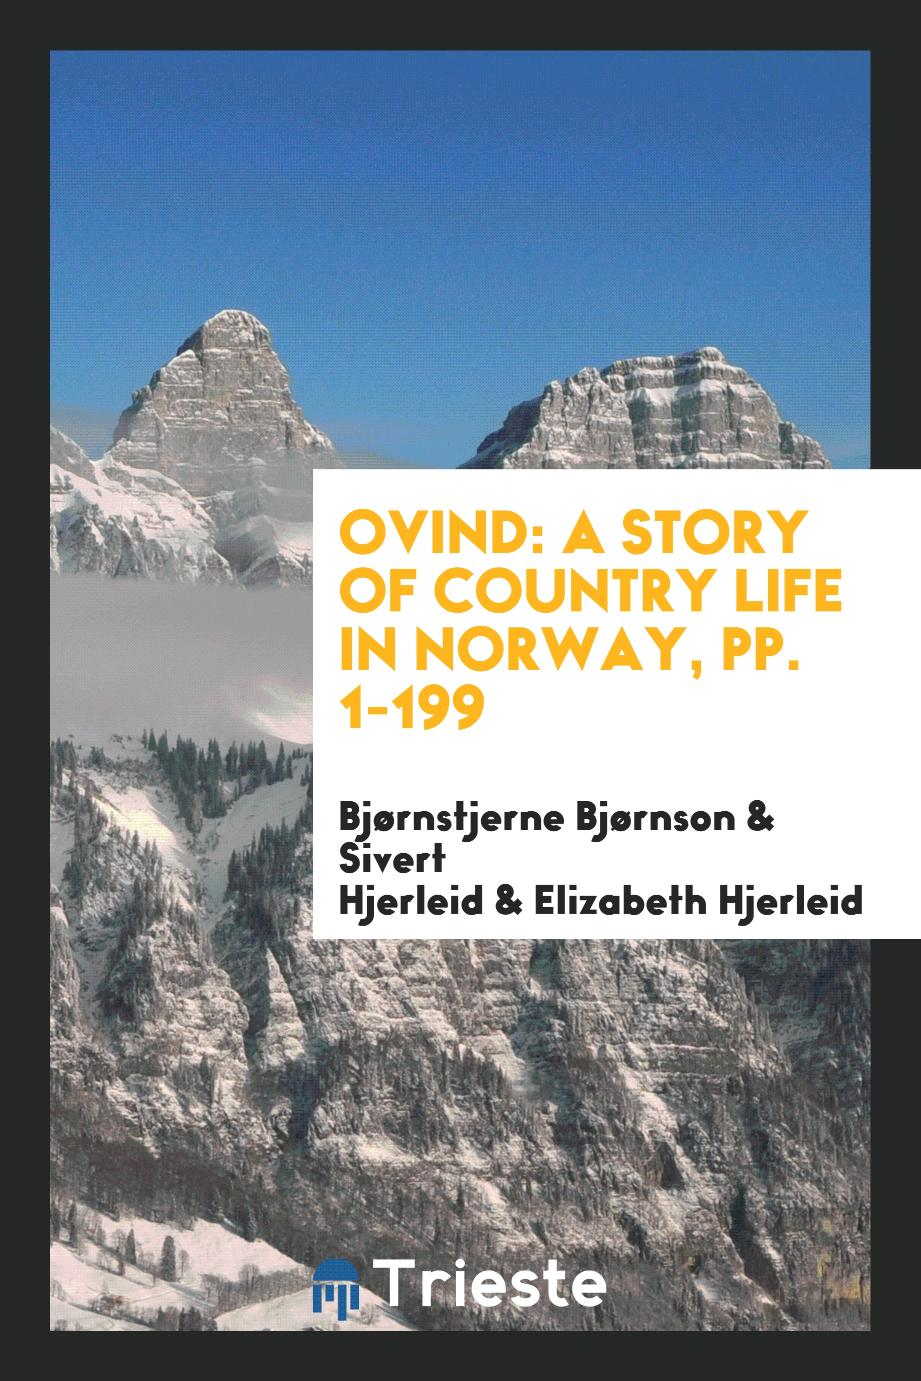 Ovind: A Story of Country Life in Norway, pp. 1-199